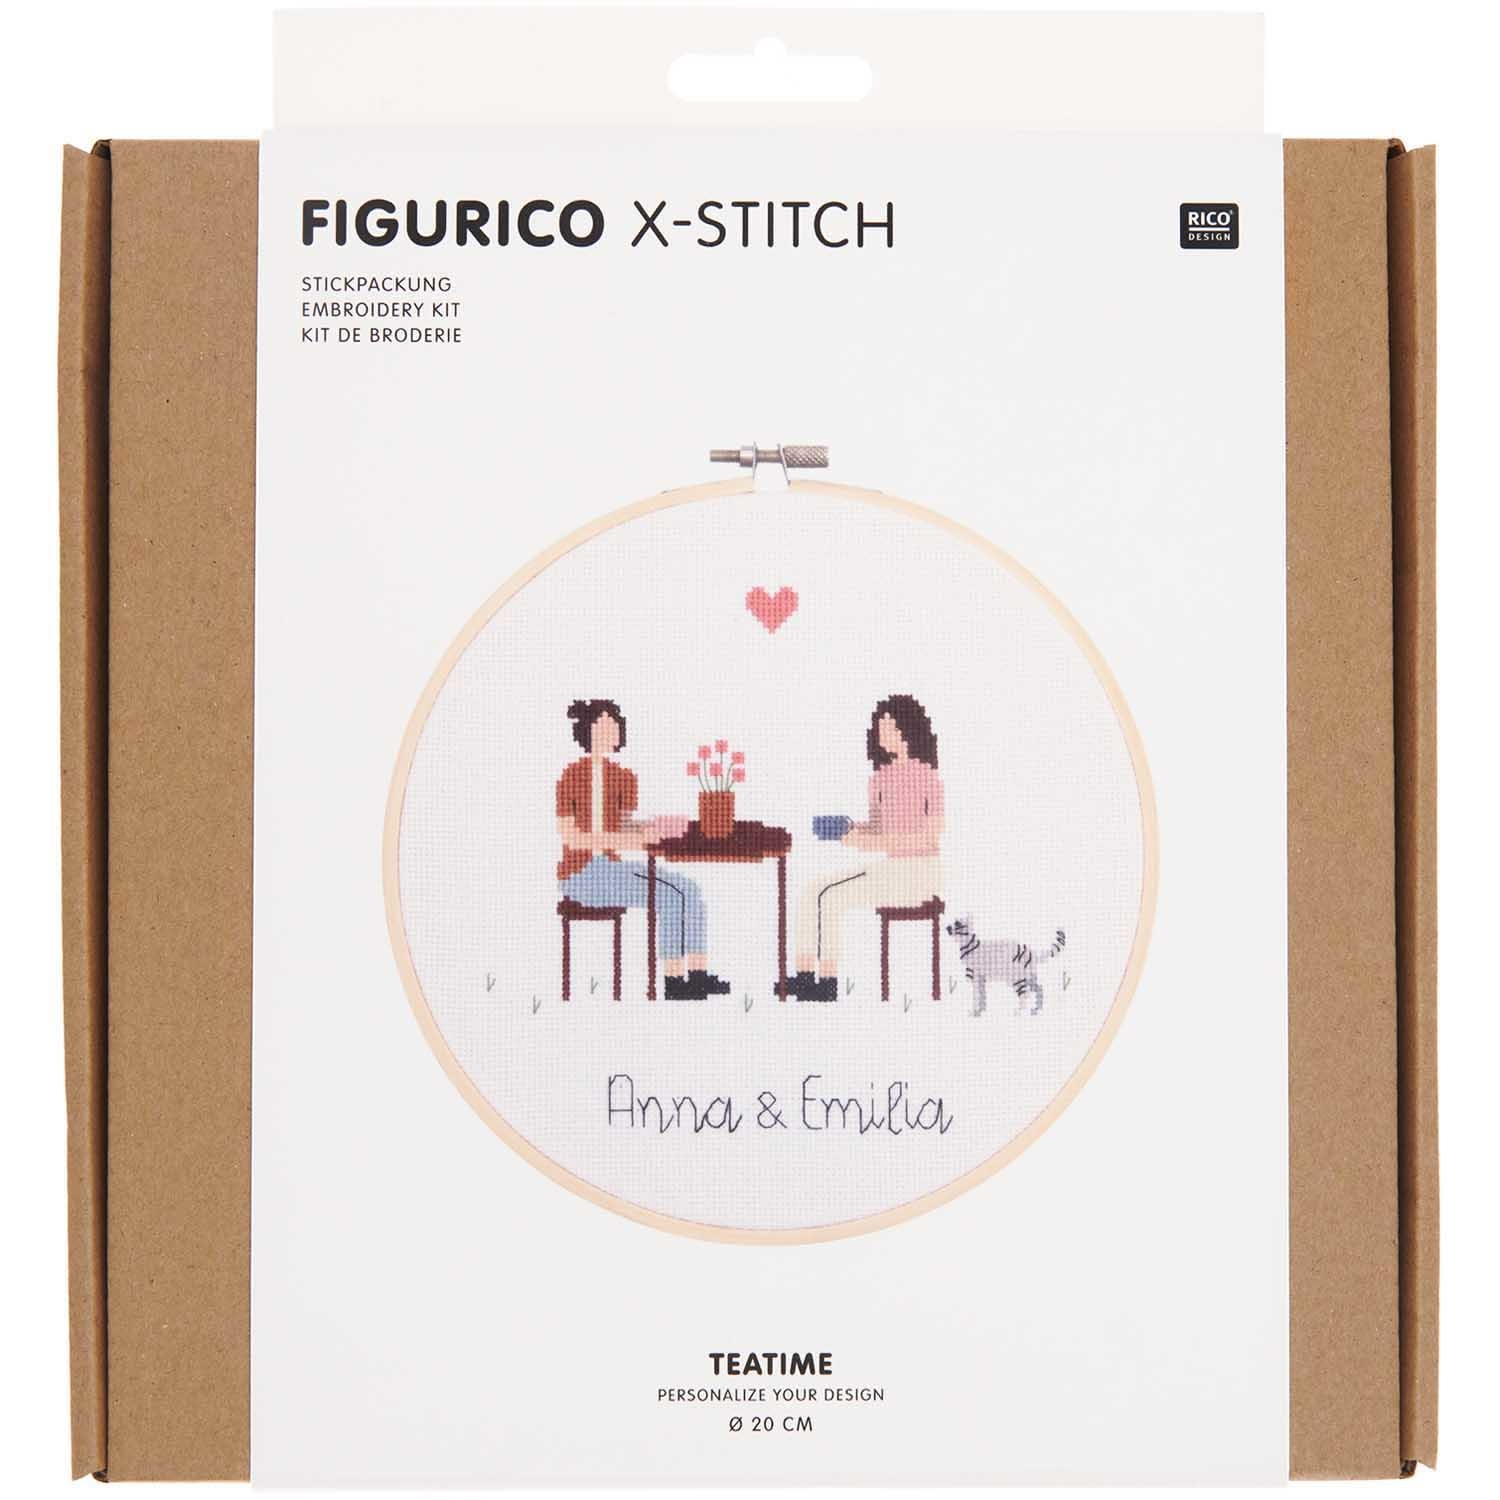 Rico NAY Embroidery kit Figurico Teatime, picture Ø 20 cm, counted cross stitch